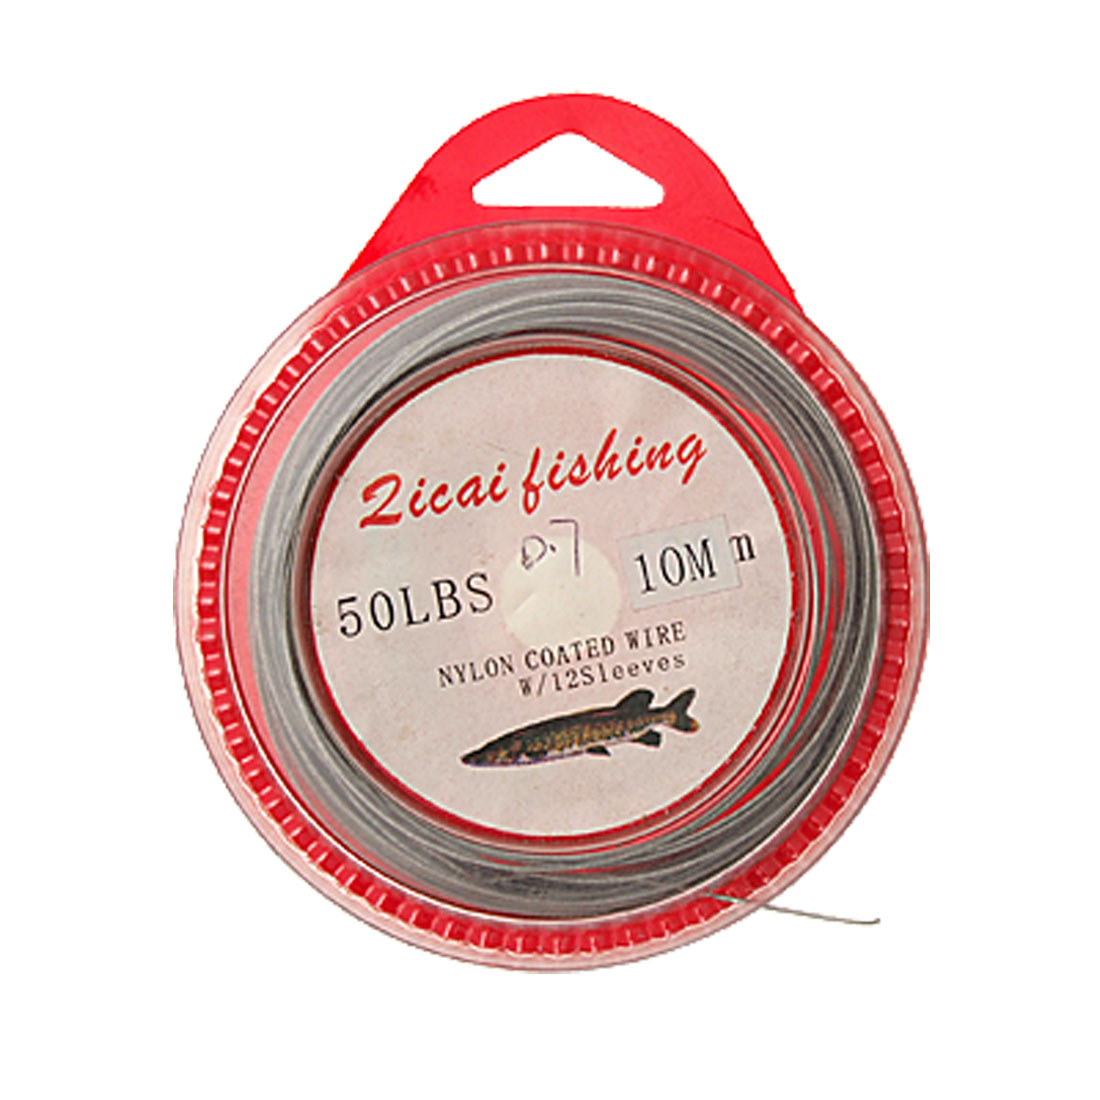 50lbs 0.7mm Braided String Fishing Line 10M